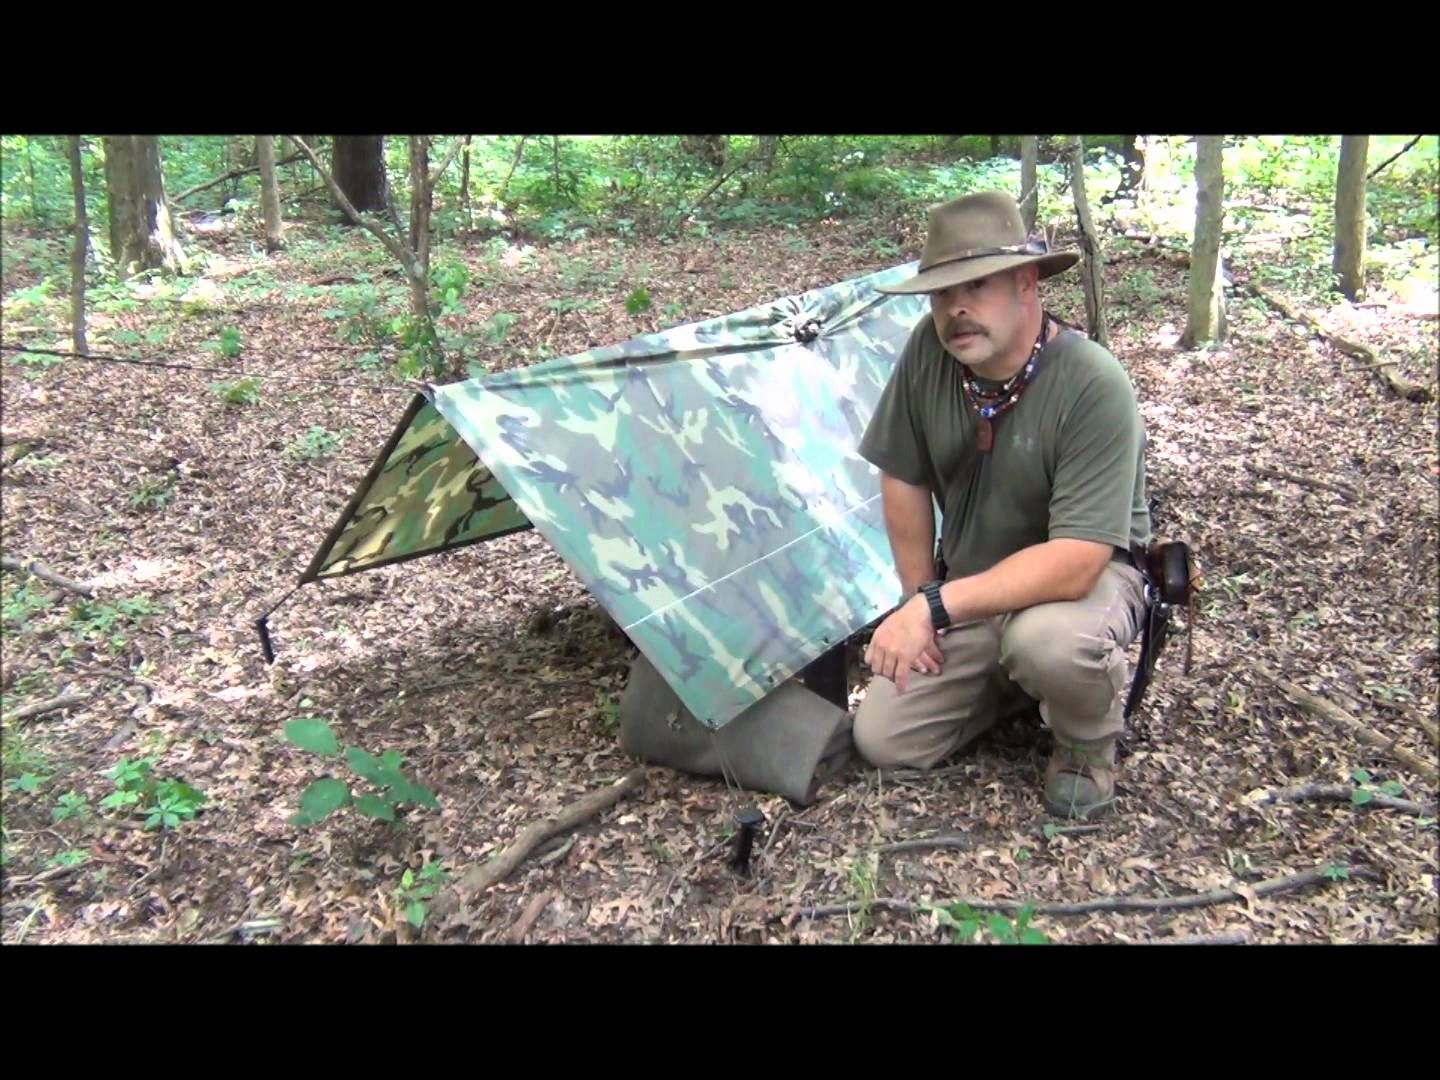 Snowalker13 - Military Poncho Shelters Type I & II - Published on Jul 2, 2012 Type I- Pup tent Type II- Open front lean-to